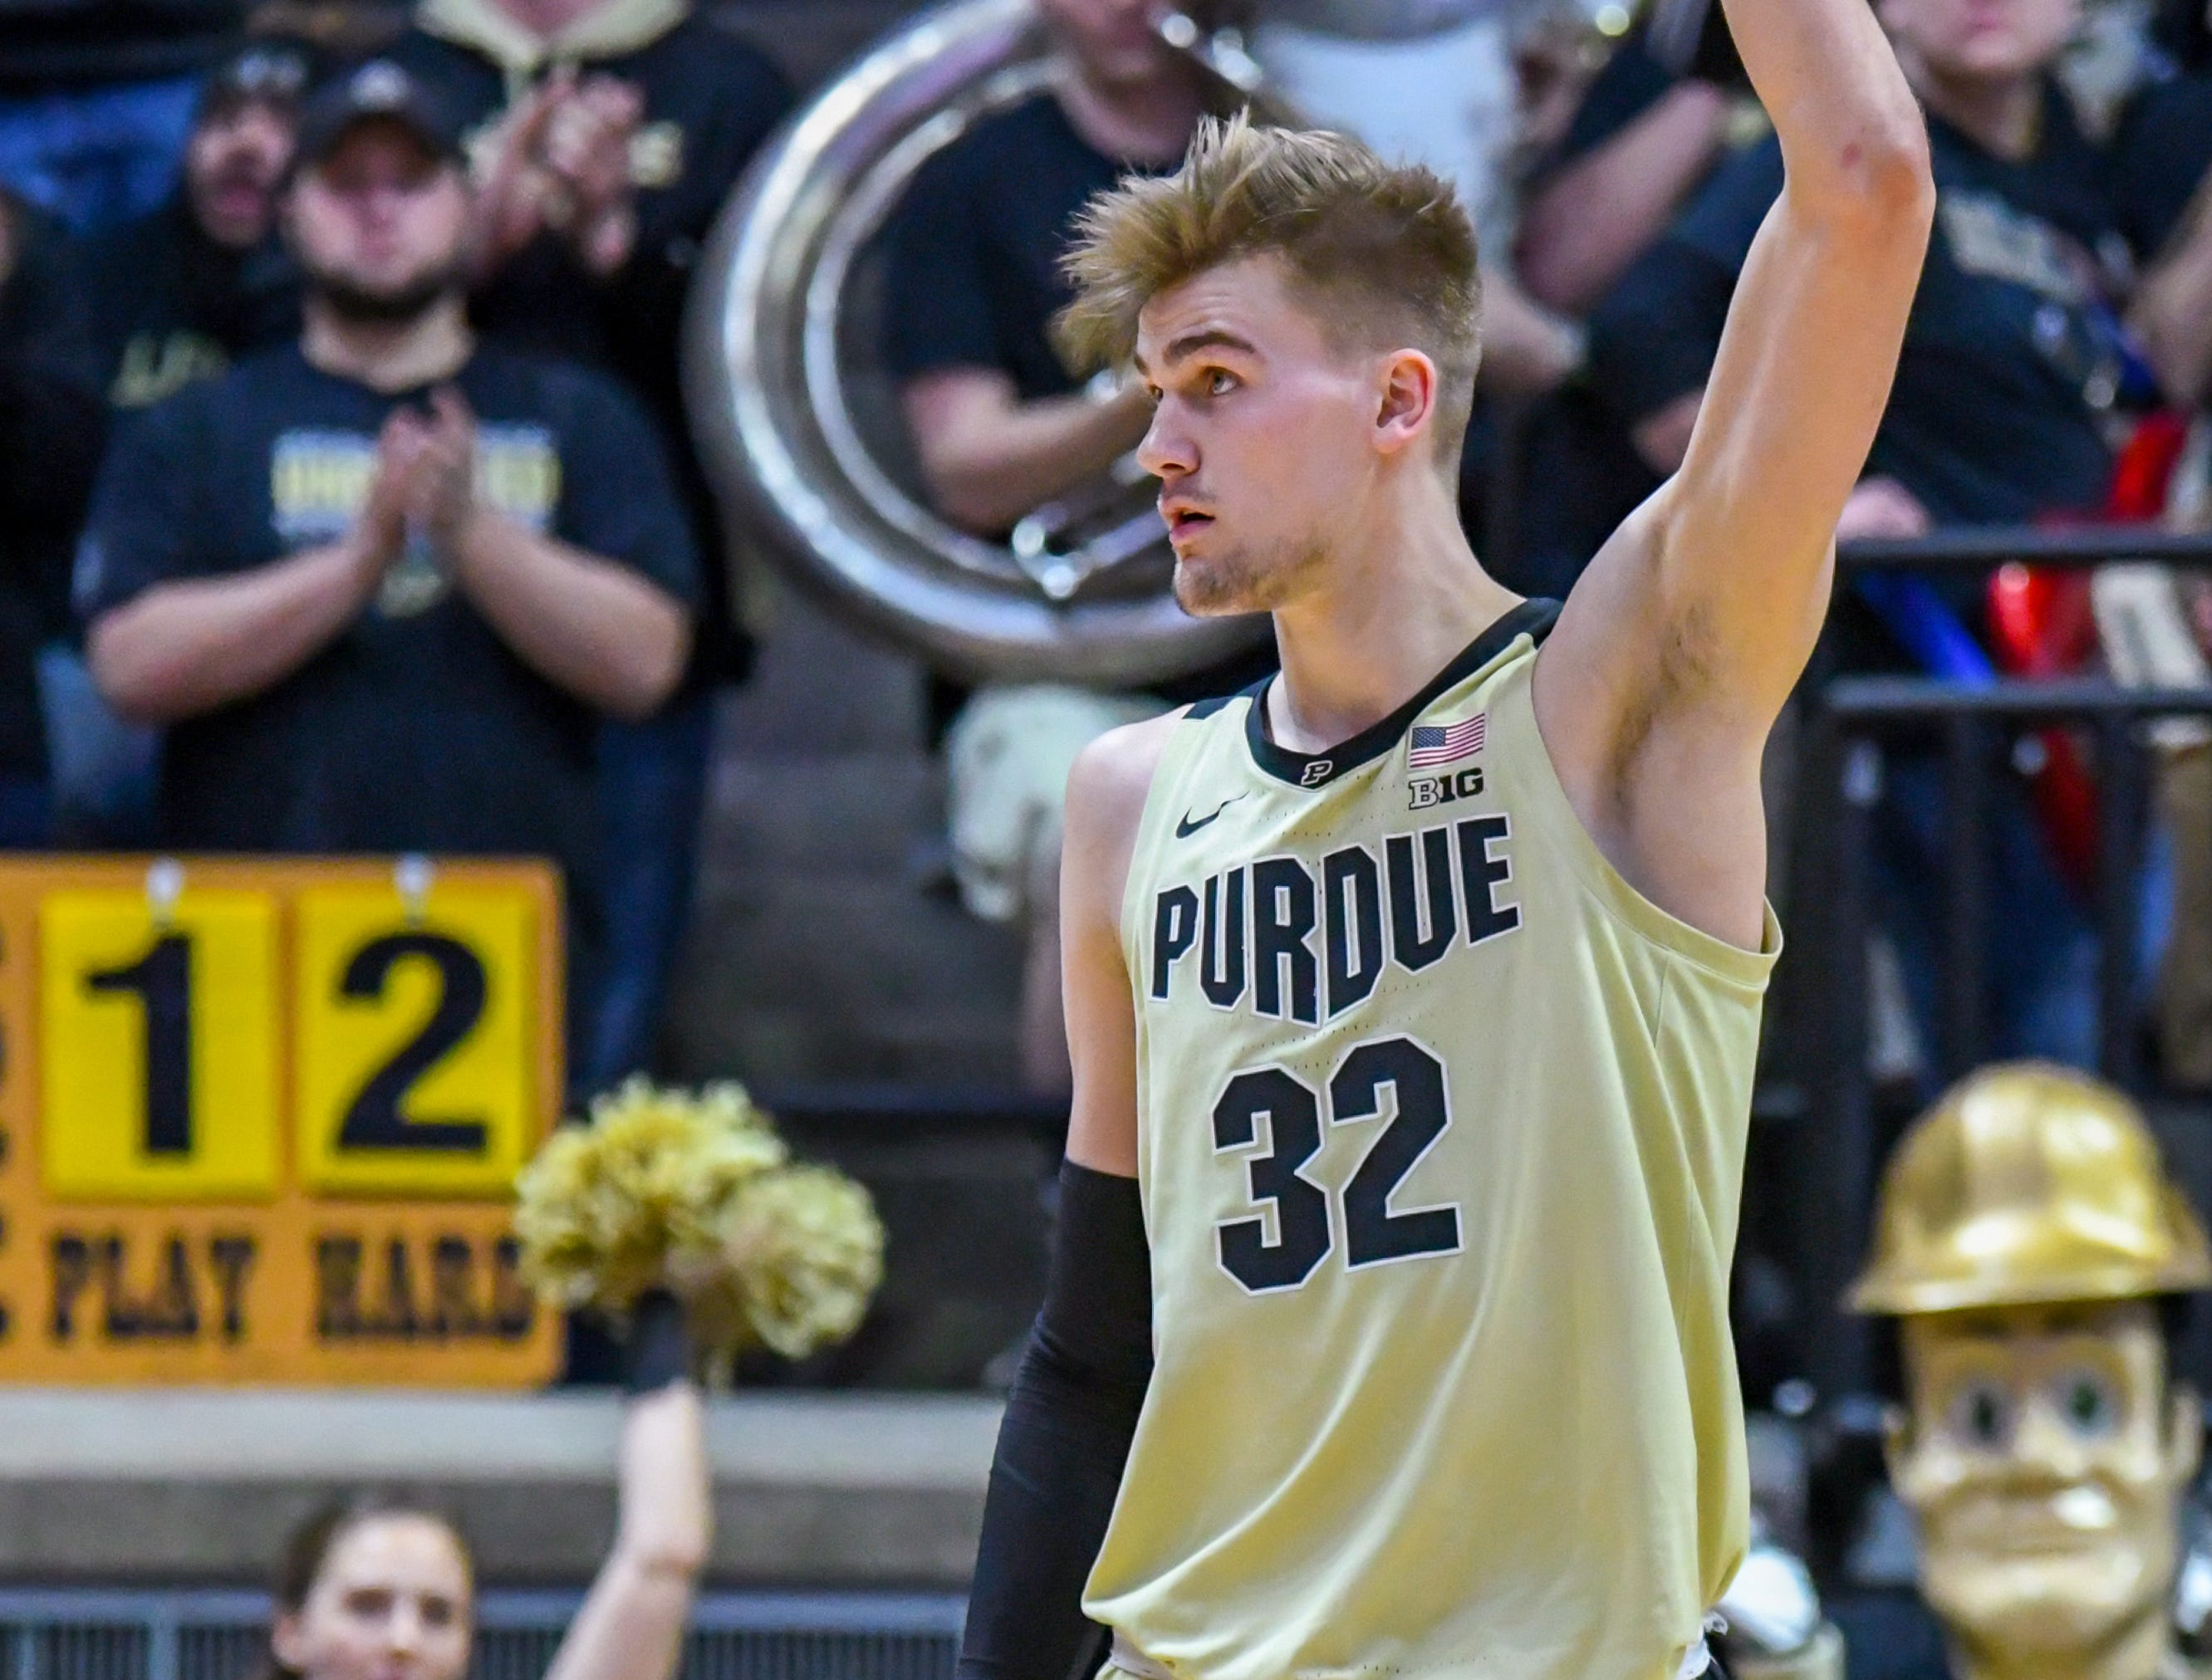 Purdue's Matt Haarms reacts as time runs out against Iowa in West Lafayette on Thursday January 3, 2019. Purdue defeated the Hawkeyes 86-70.